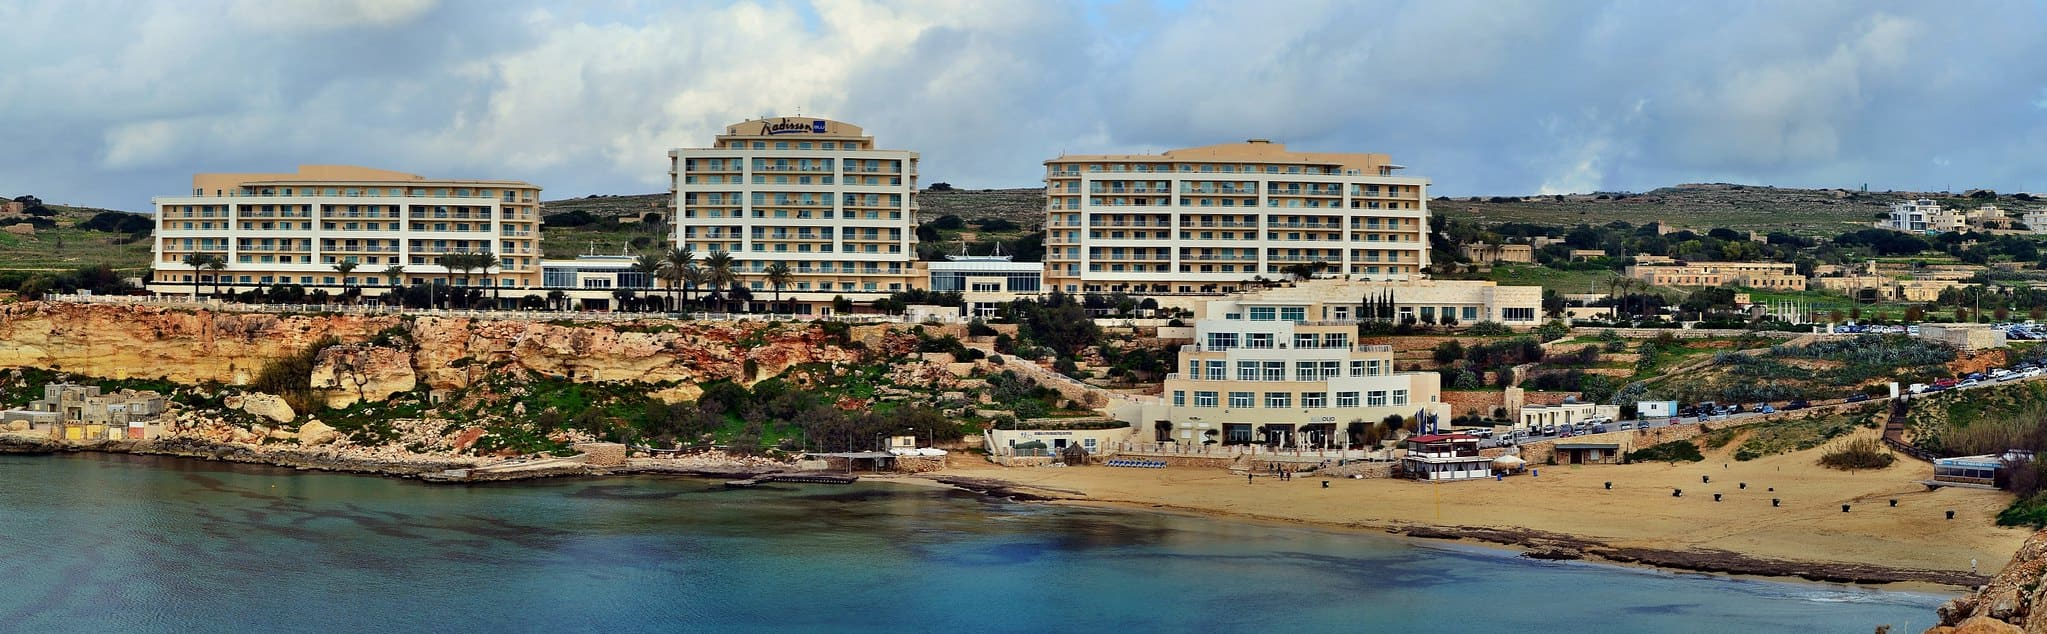 Golden Sands Malta